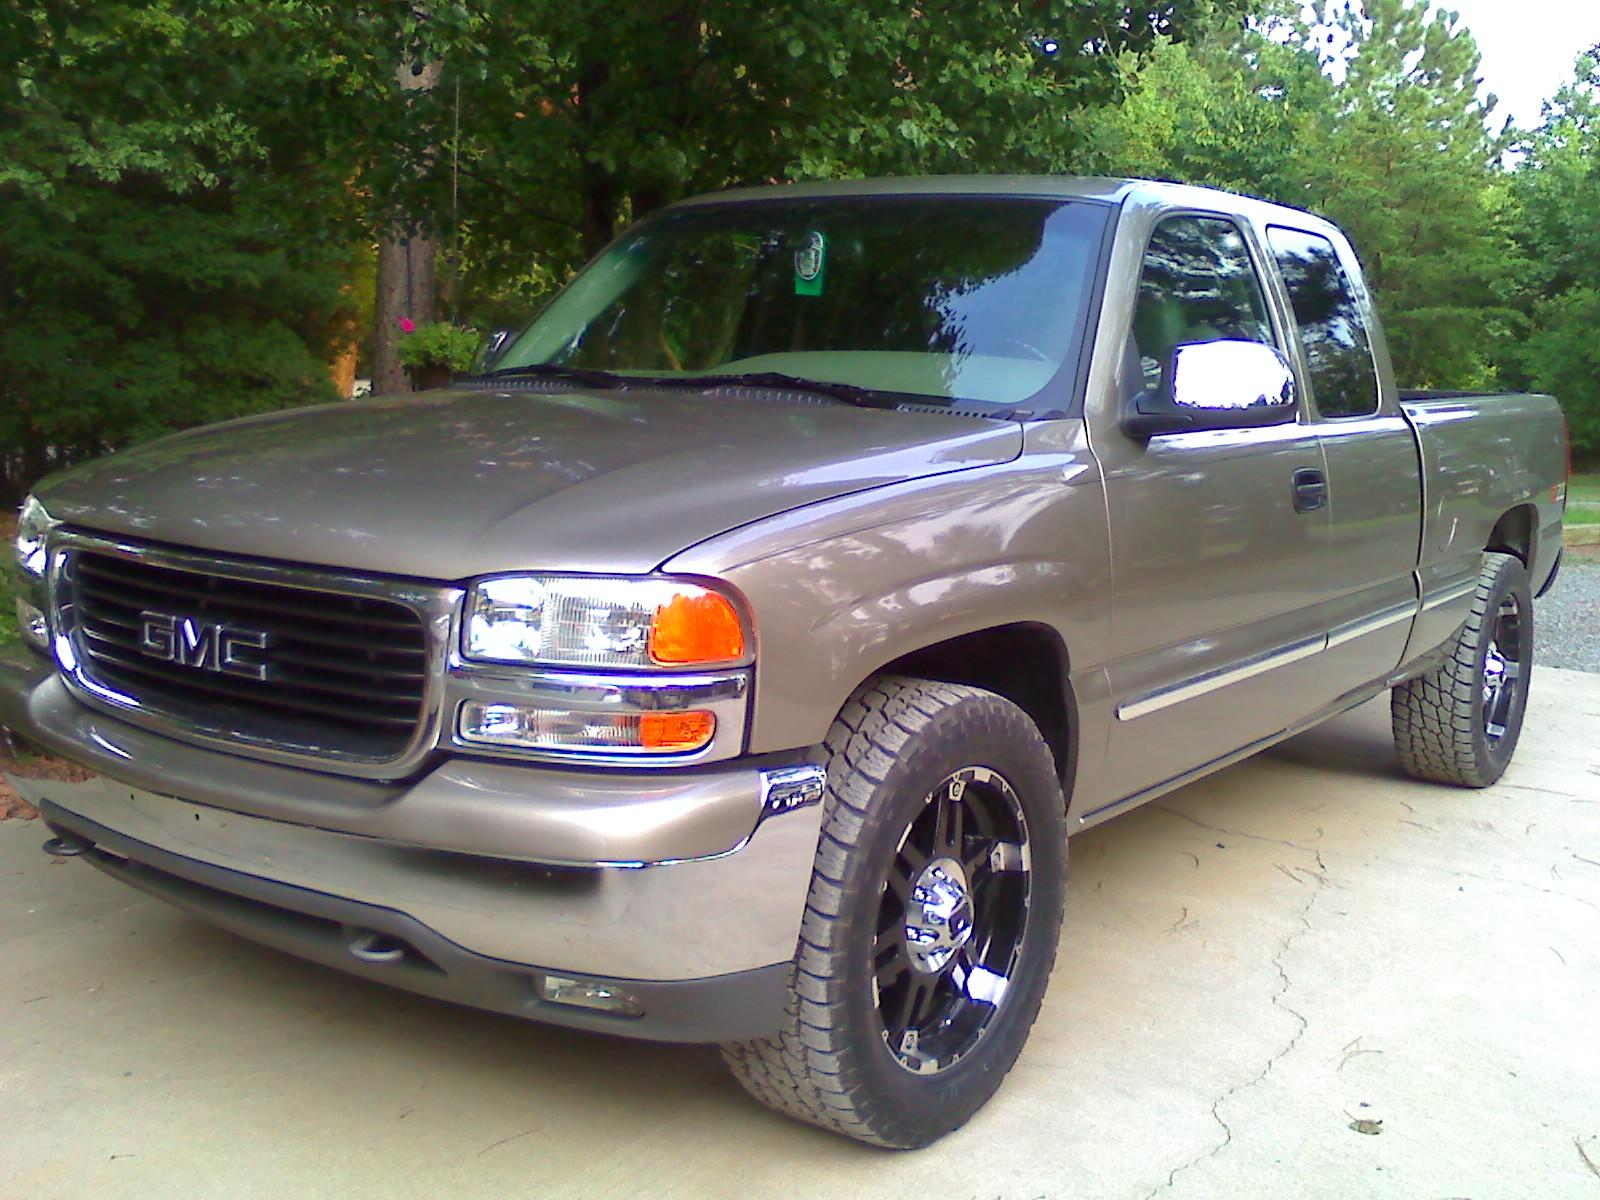 S4vill3 2002 Gmc Sierra Classic 1500 Extended Cab Specs